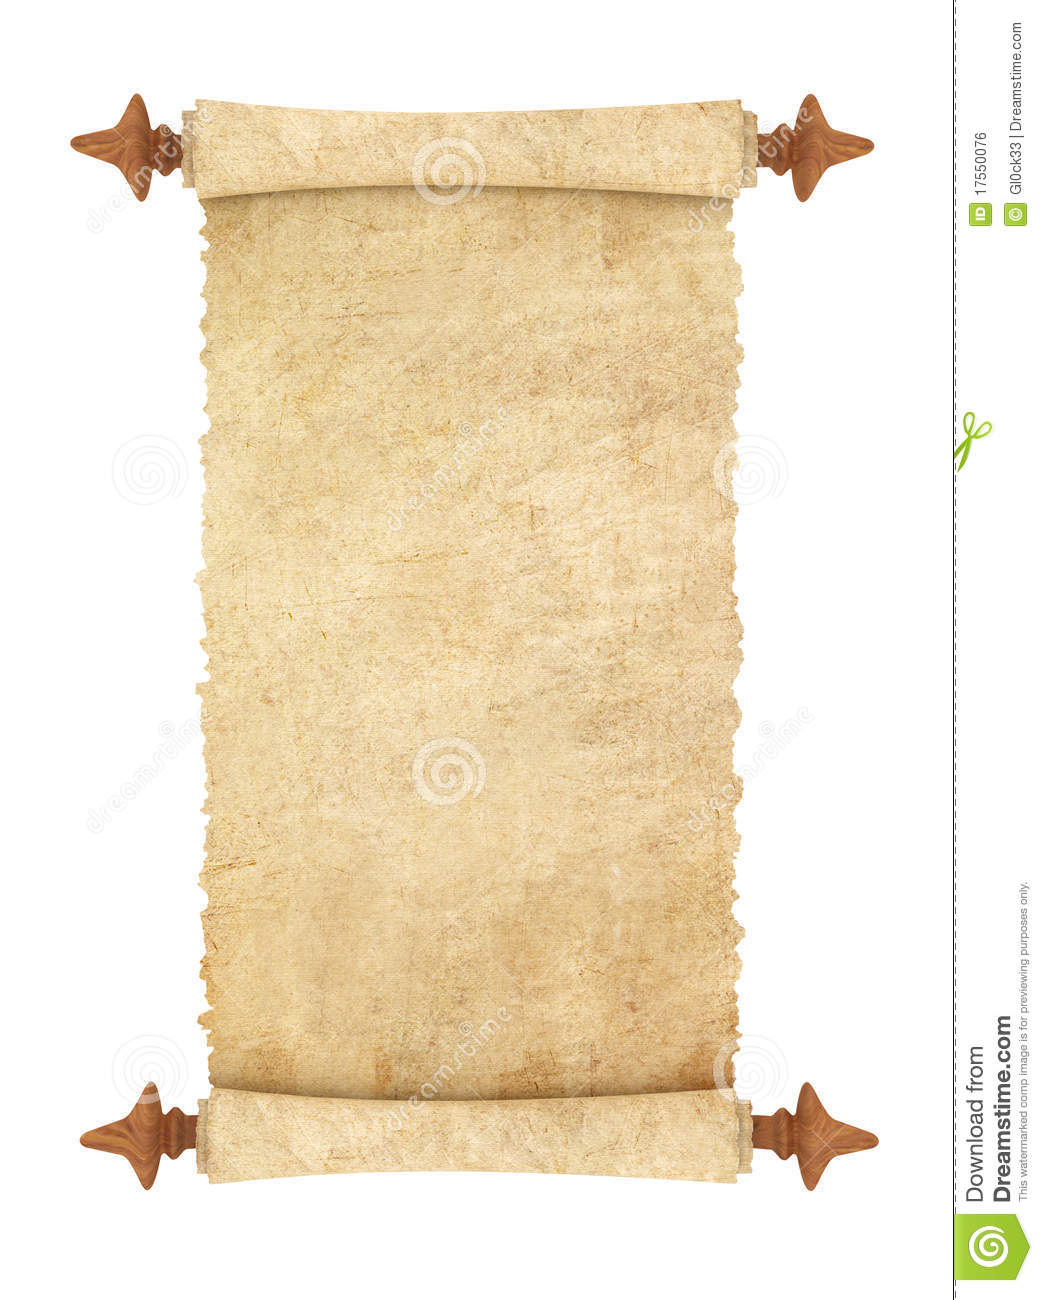 scroll of old parchment stock illustration  image of ancient